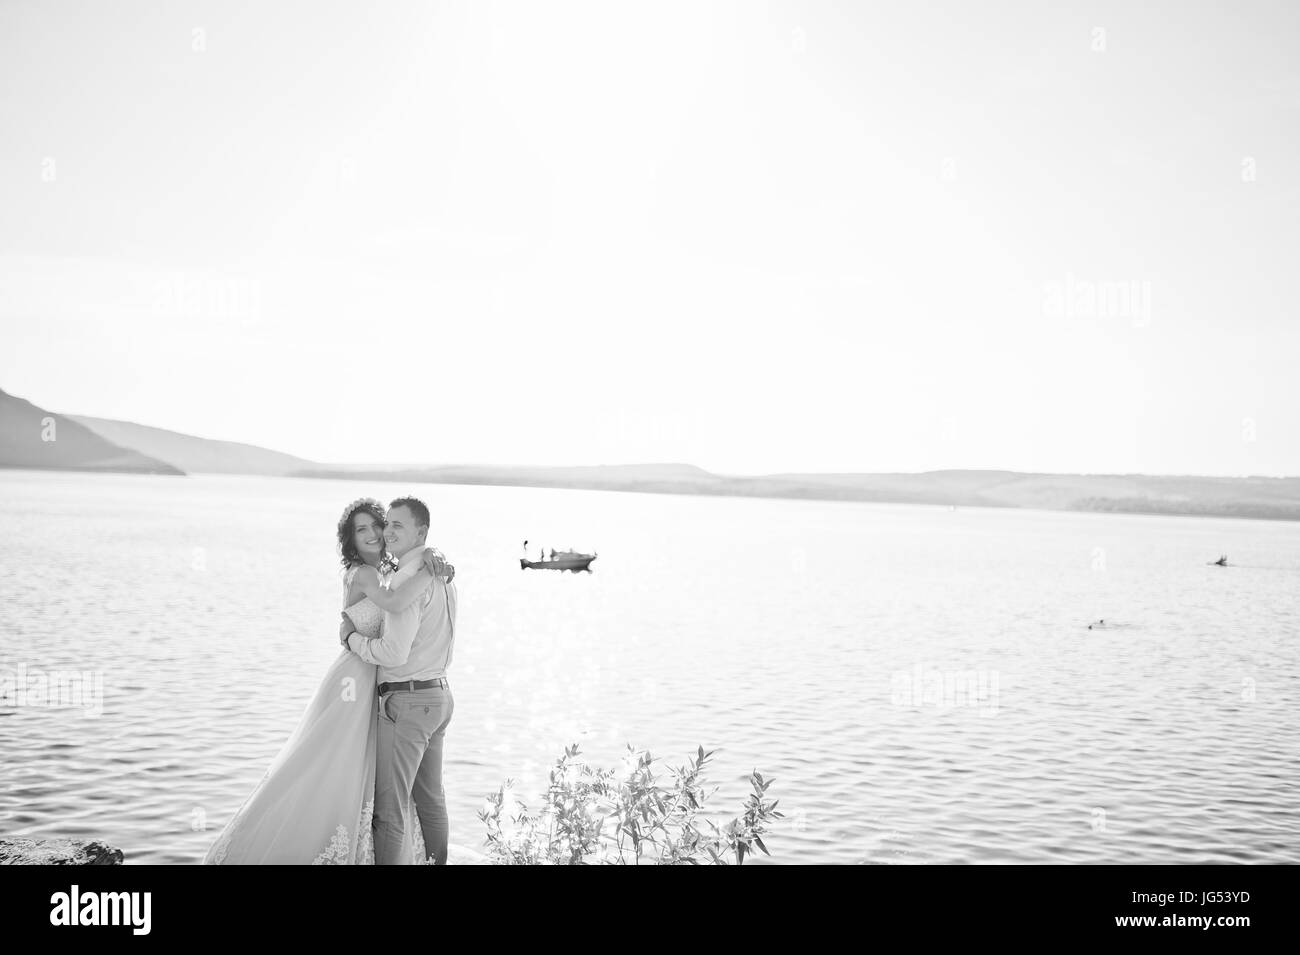 Newly married couple dancing on the rocky cliff with a view of a lake in the background on their wedding day. Black - Stock Image